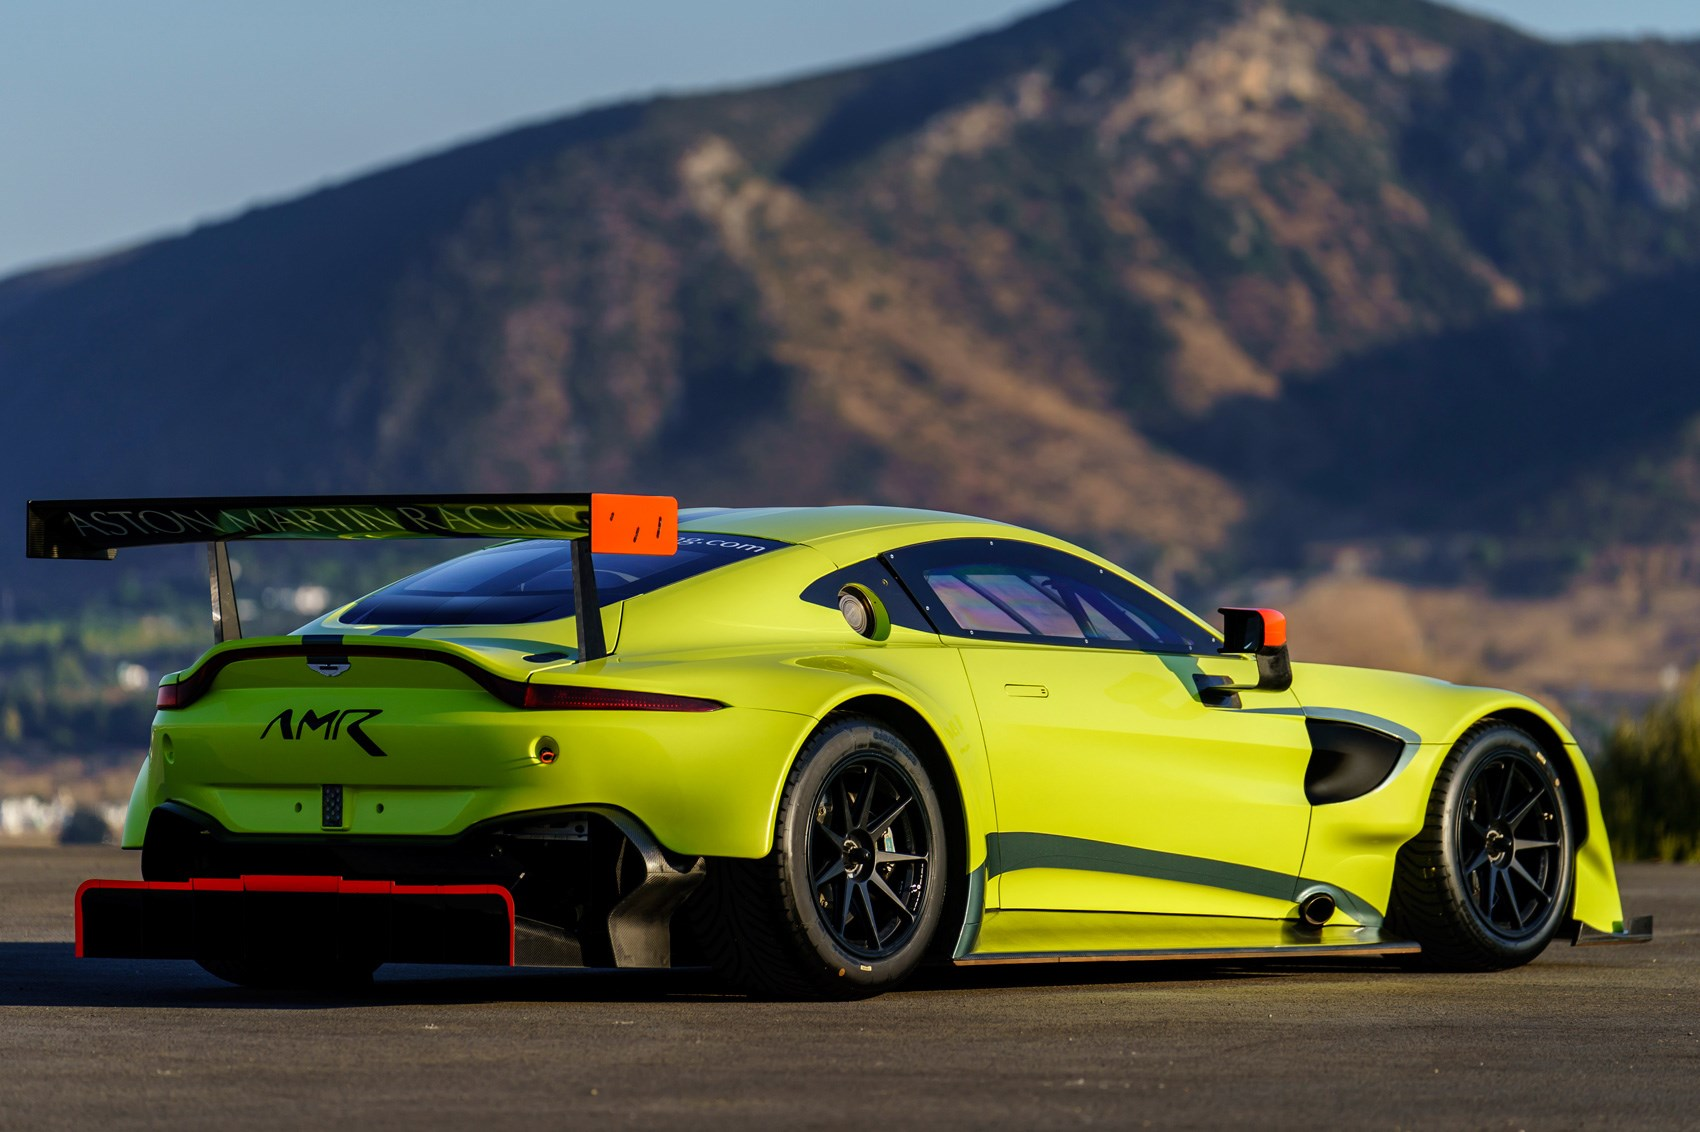 meet the world eater new aston martin racing vantage gte revealed by car magazine. Black Bedroom Furniture Sets. Home Design Ideas